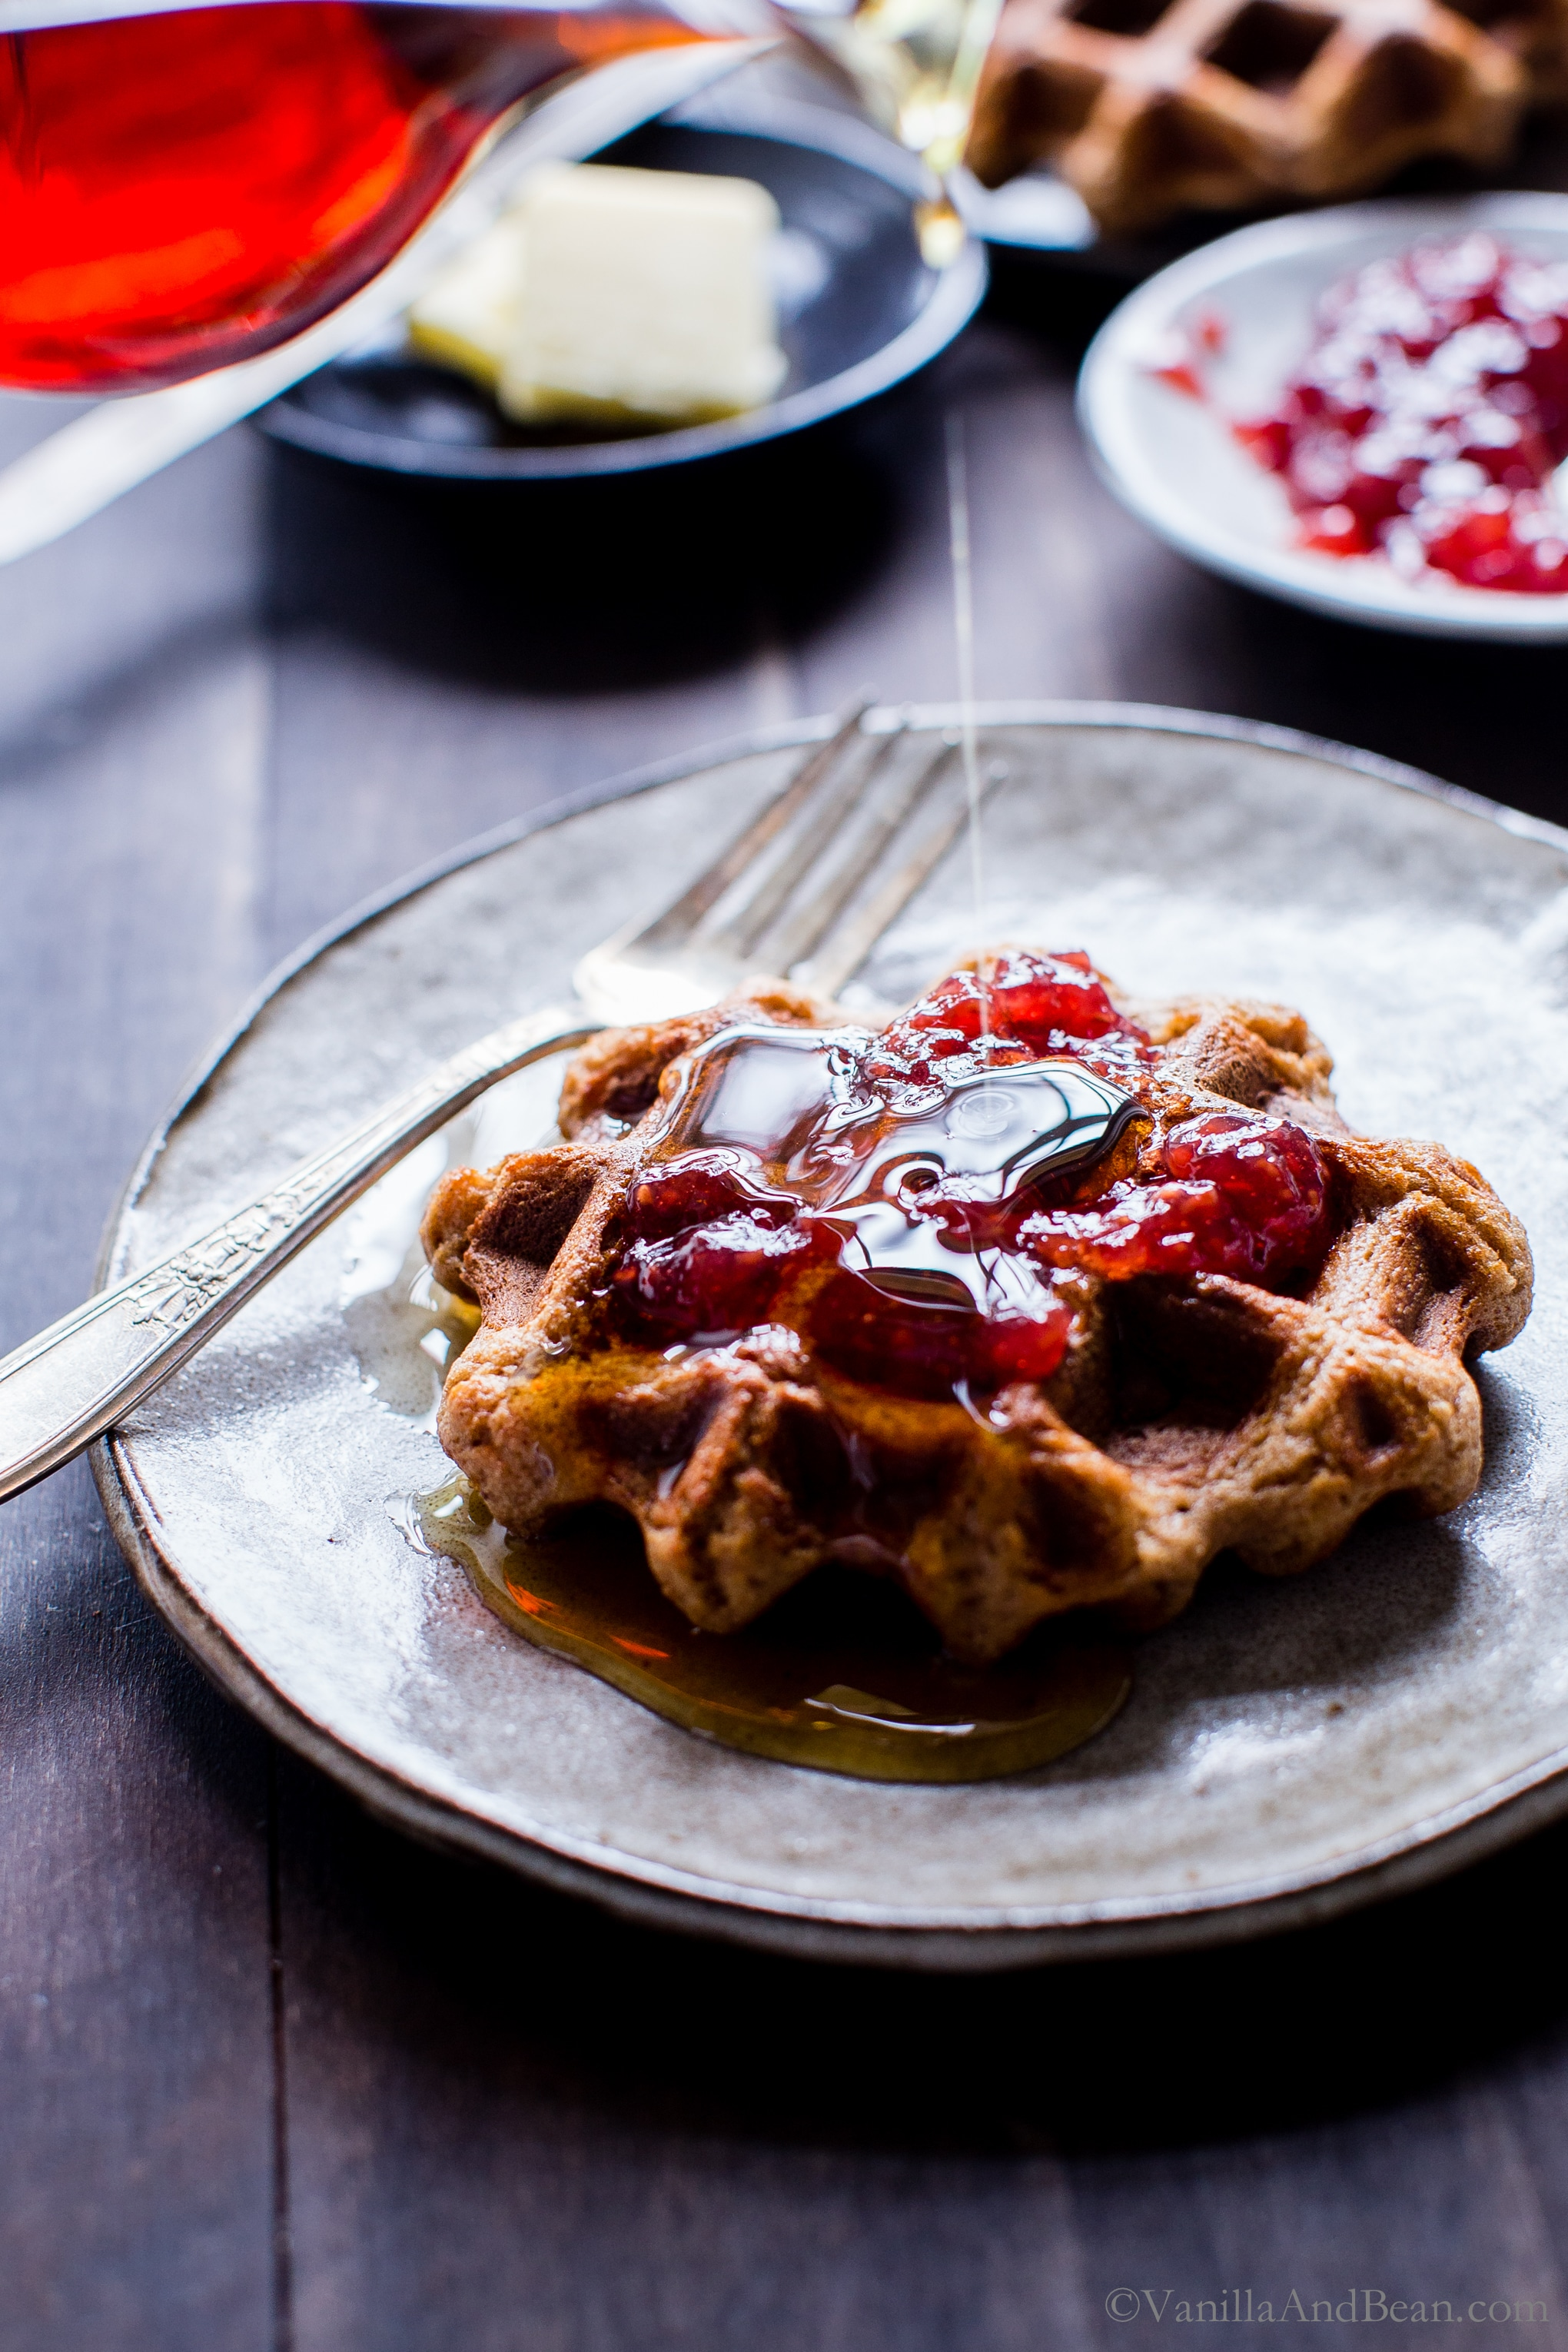 Banana-Pecan Oat Waffles on a plate with syrup drizzled over the top, ready for eating. .